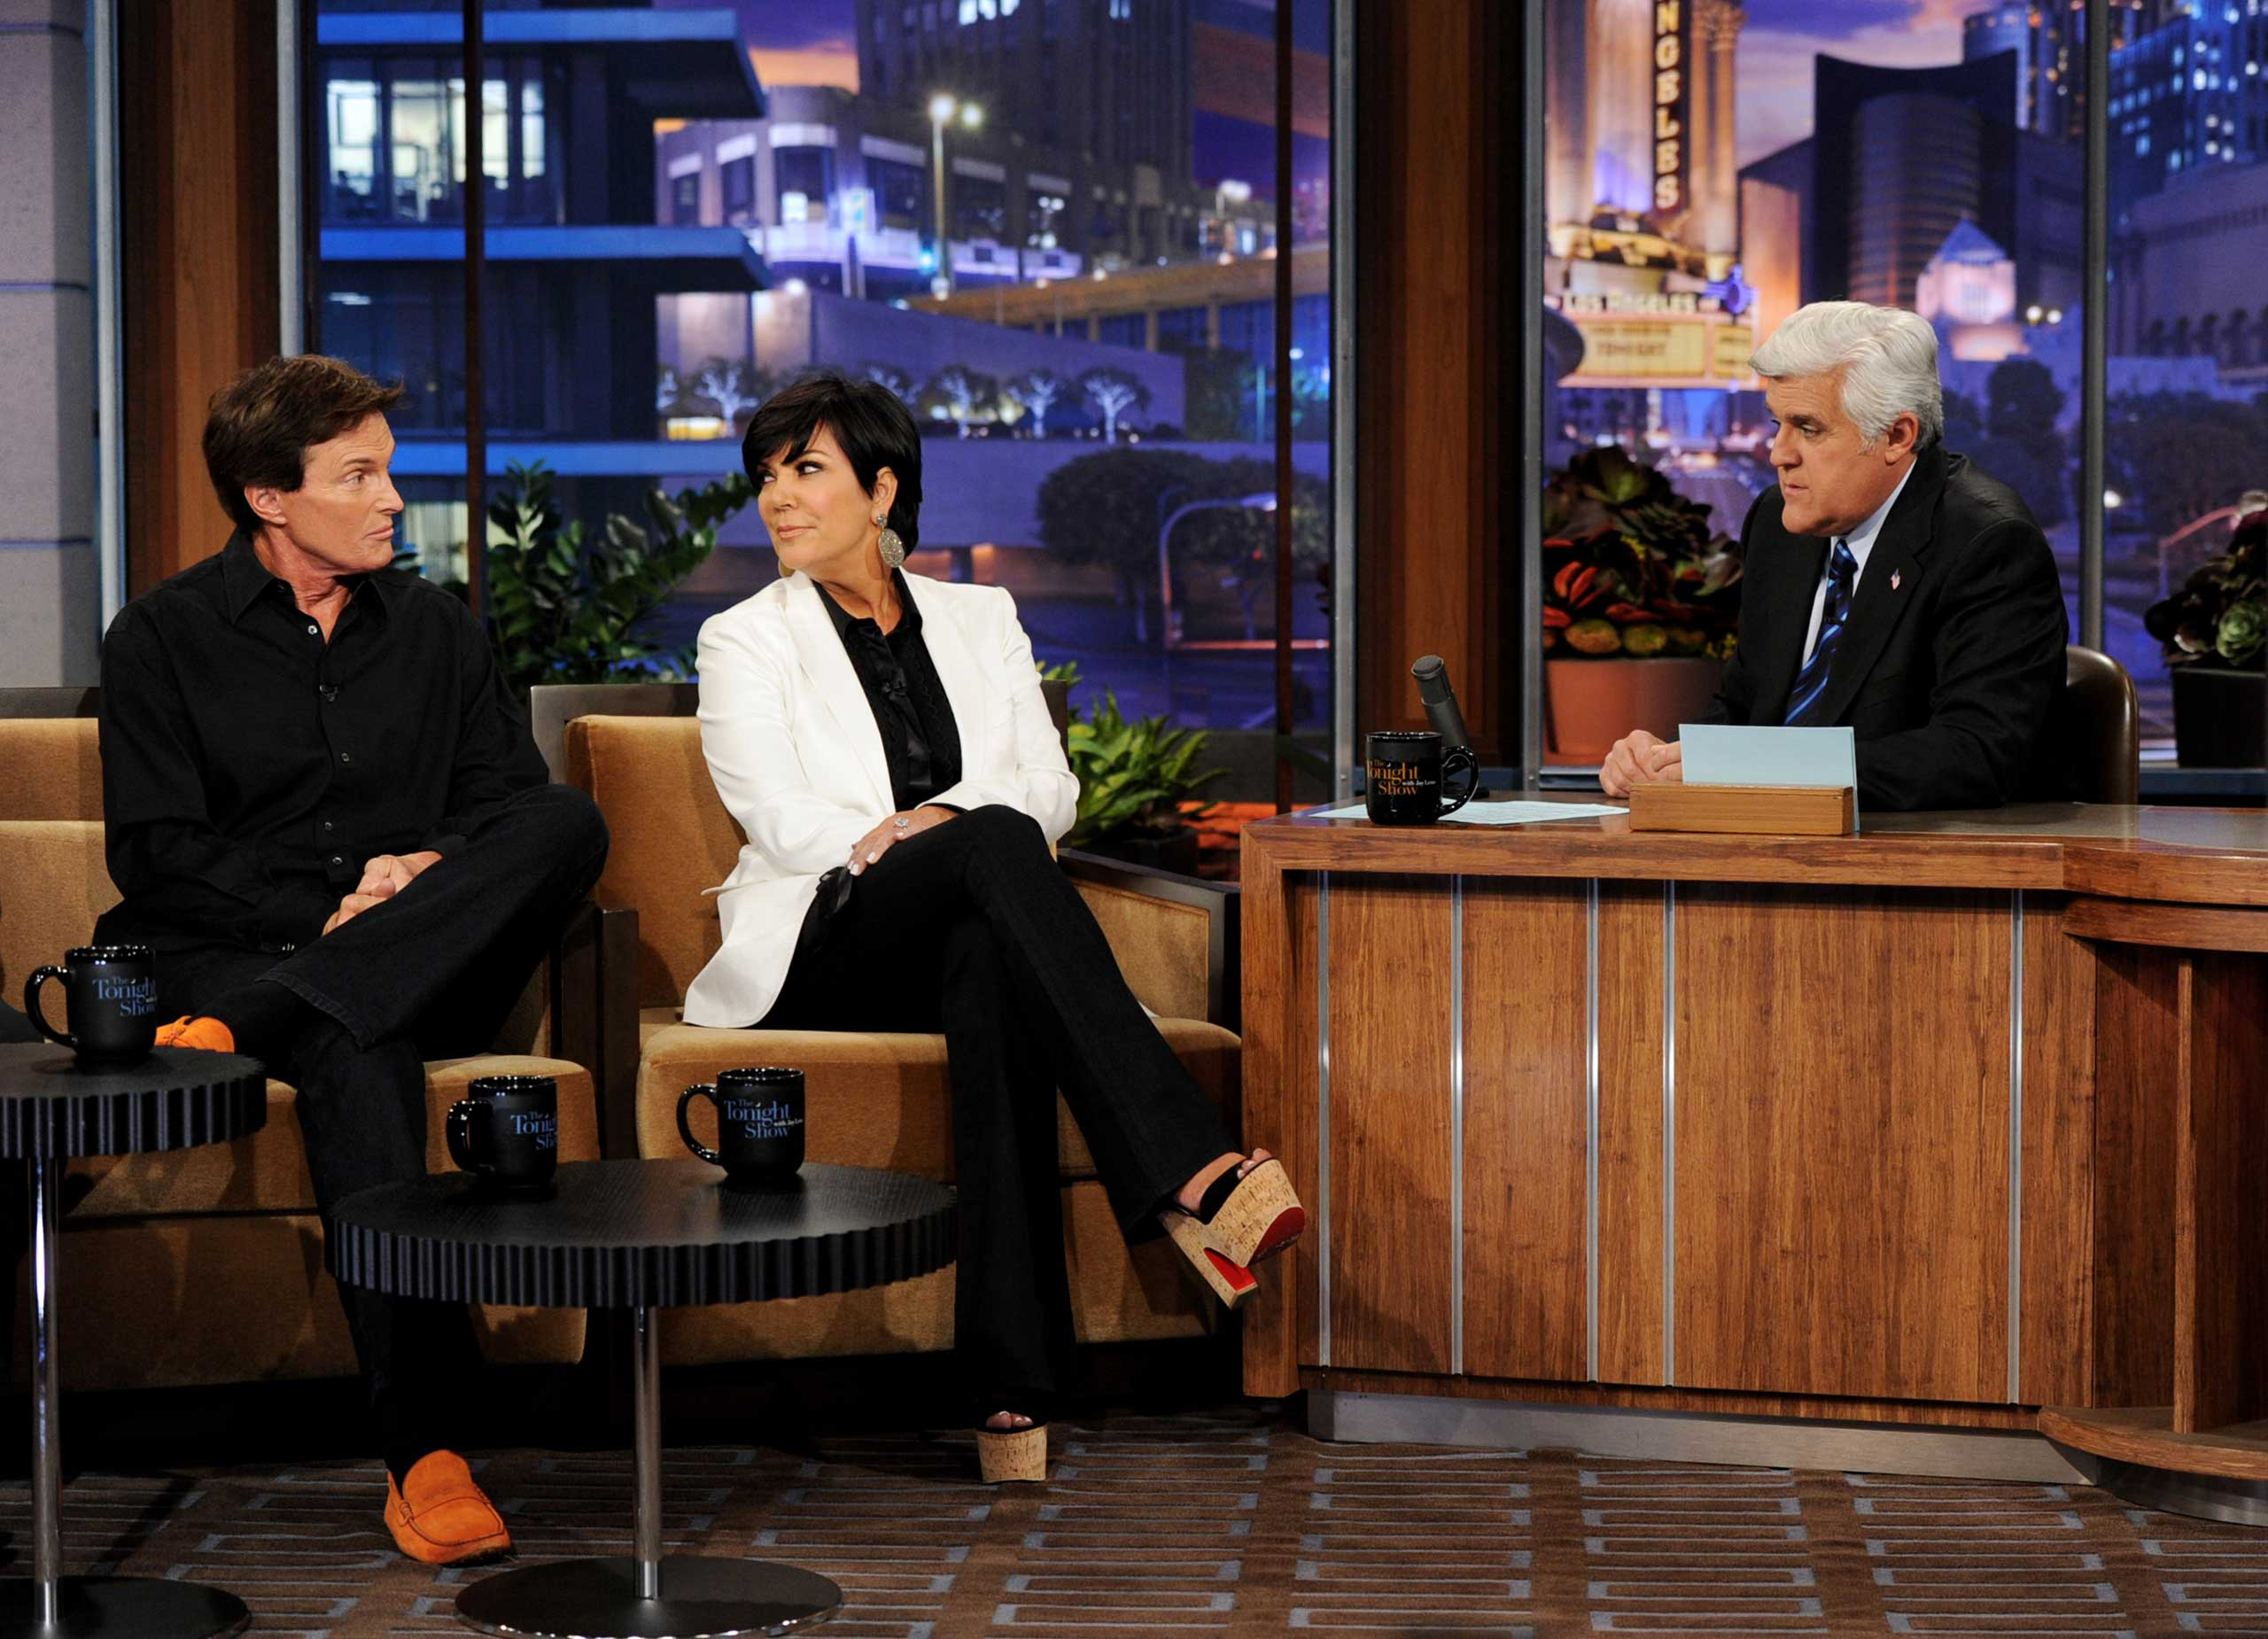 Jenner and Kris, here at <i>The Tonight Show</i> with Jay Leno in 2011, announced their separation in 2013. She filed for divorce the following year.